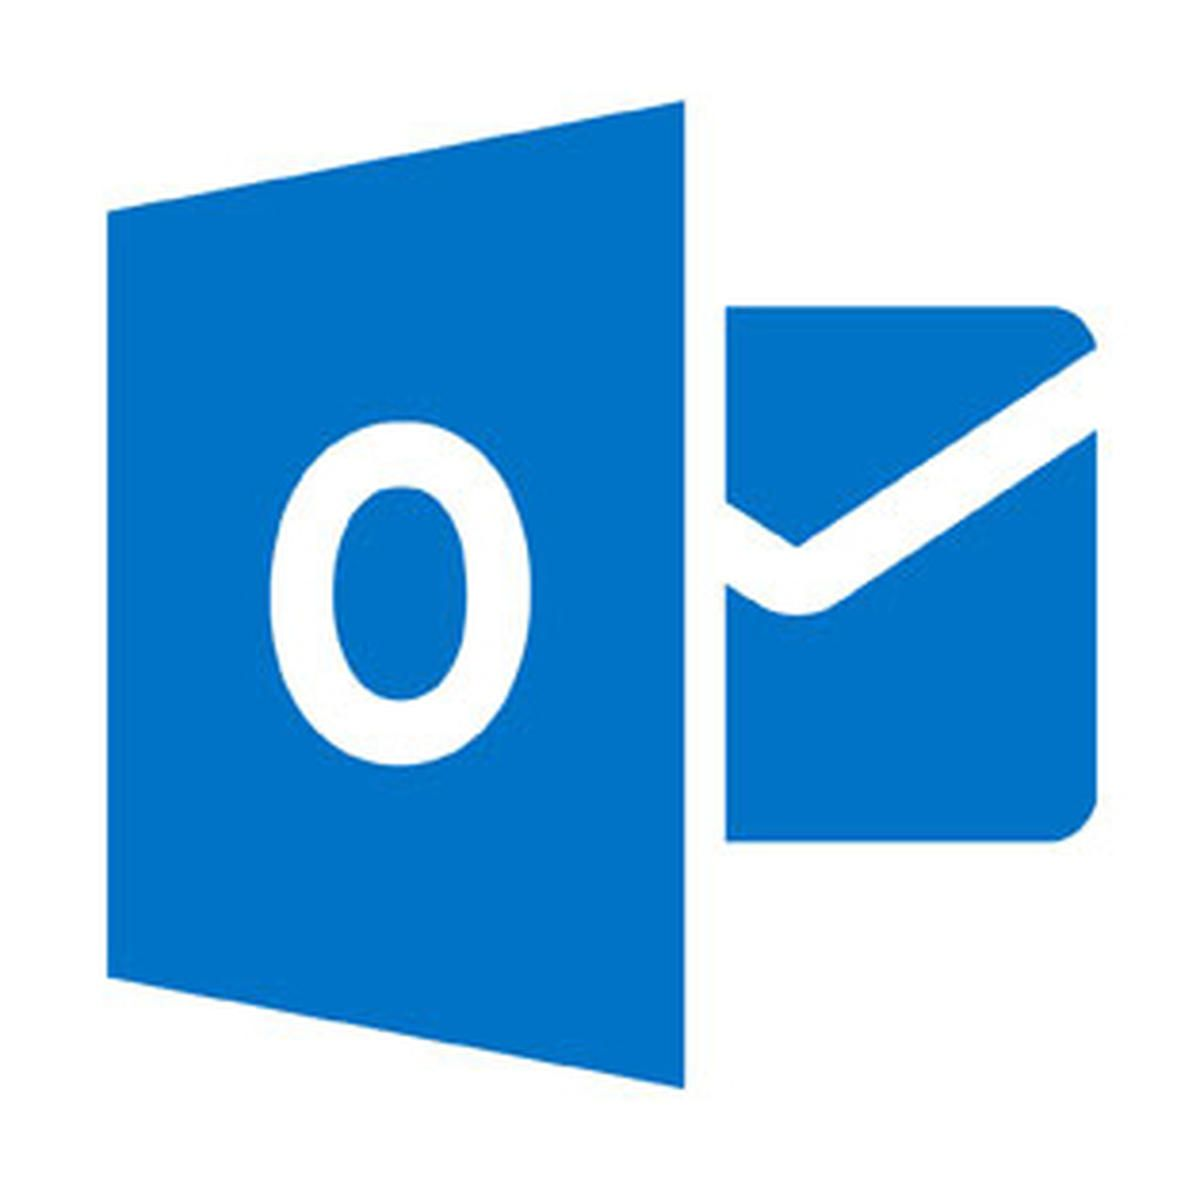 How to sign in to Office 365 if you have your